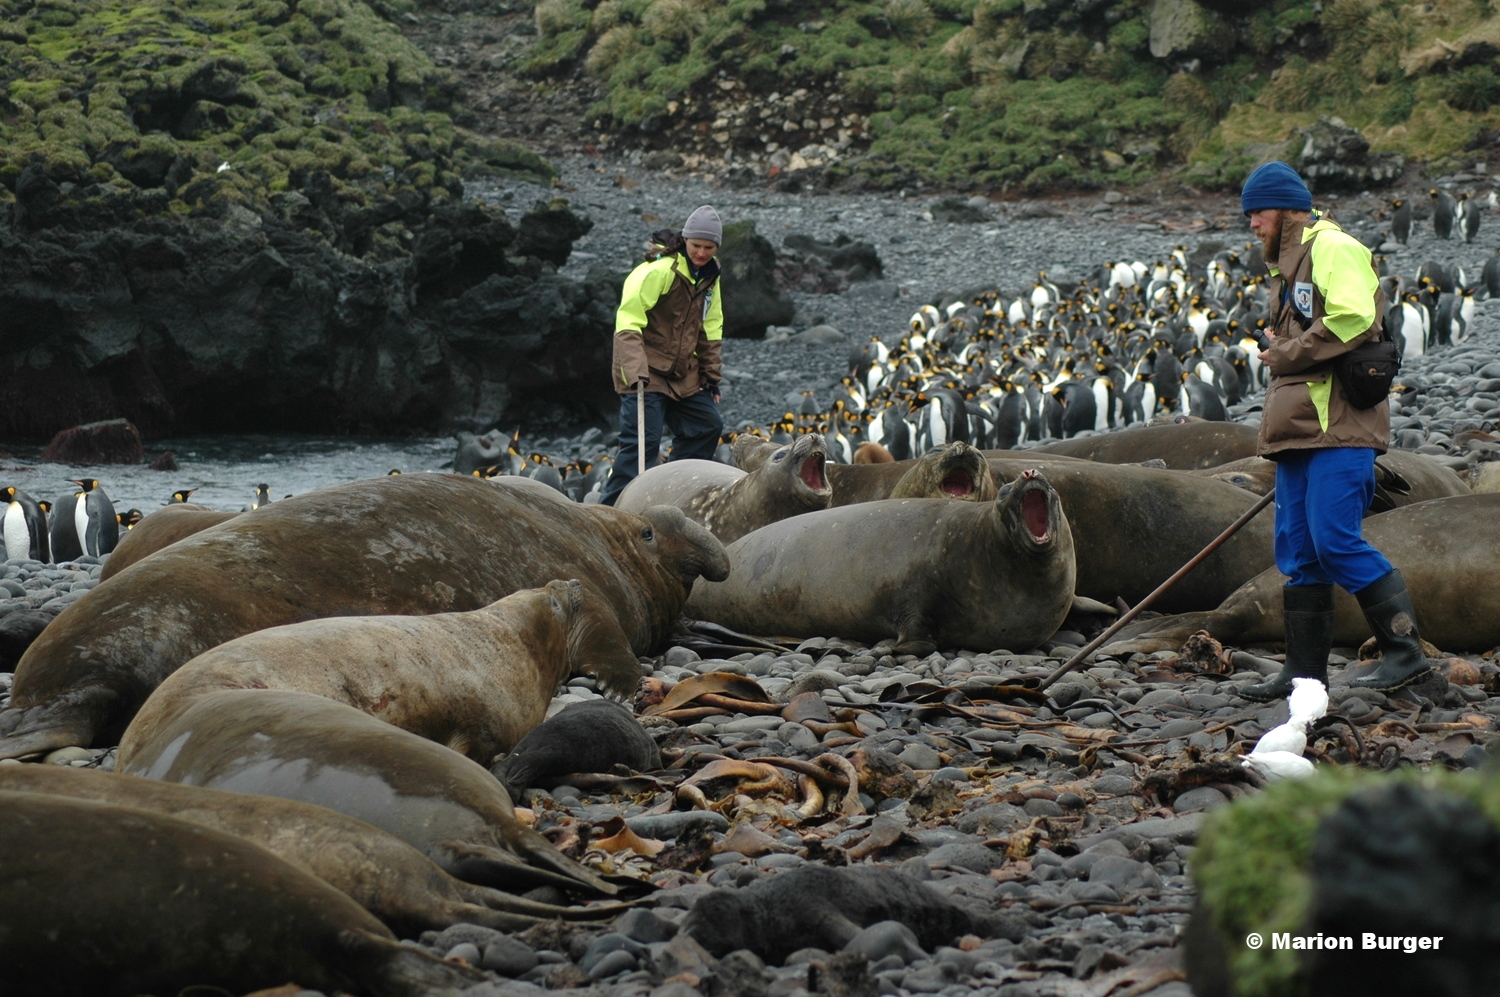 Cheryl Tosh and Nico de Bruyn checking elephant seals for flipper tags during a breeding season census. Photo credit: Marion Burger